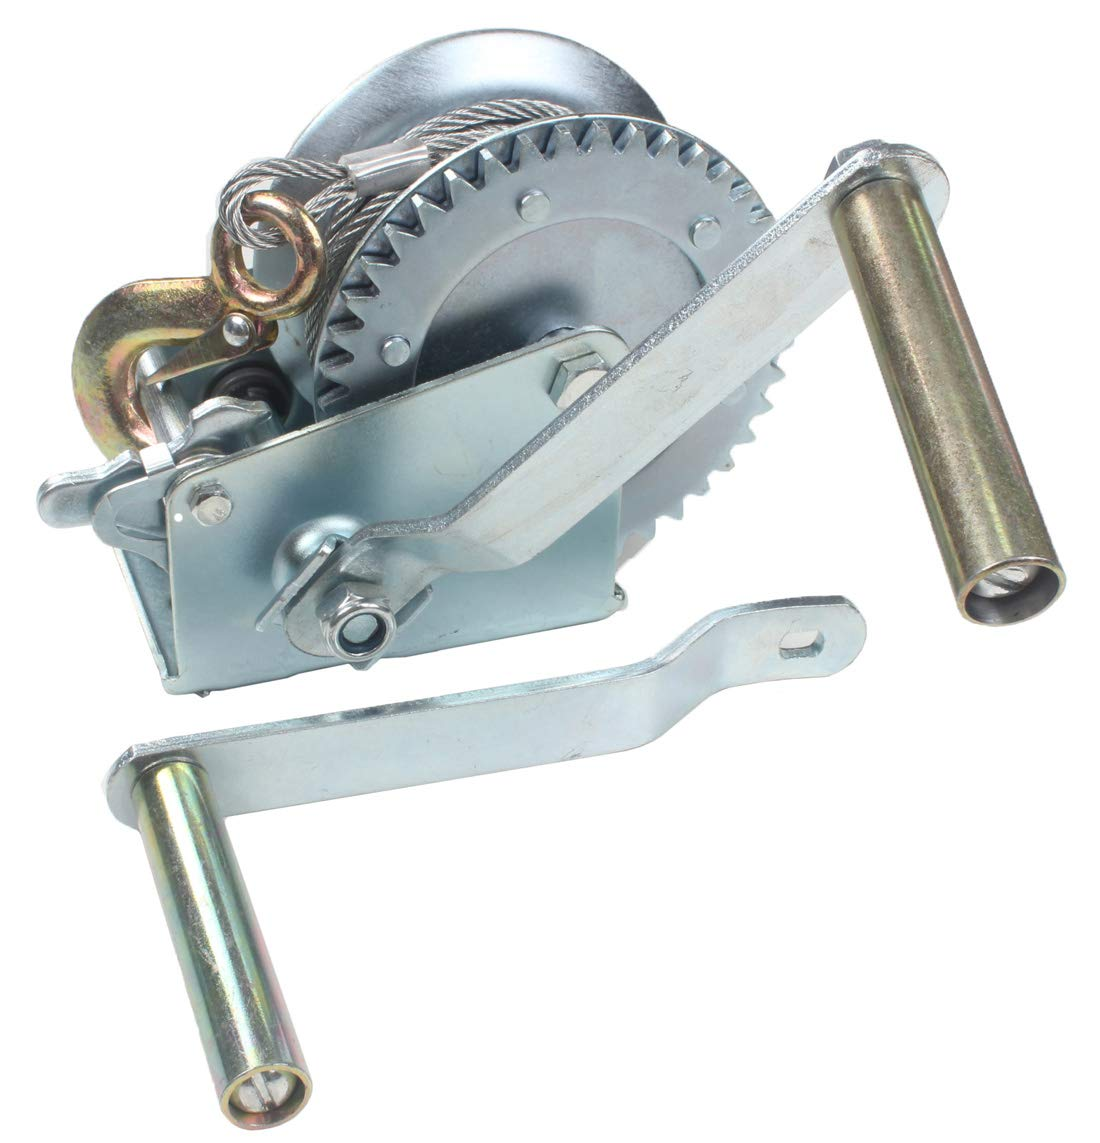 AC-DK 1600 lb - 3500 lb Hand Gear Winch Come with Two Crank Handles! - Manual Operating with Strap & Cable for Boats and Trailers(1600 lb with Strap).